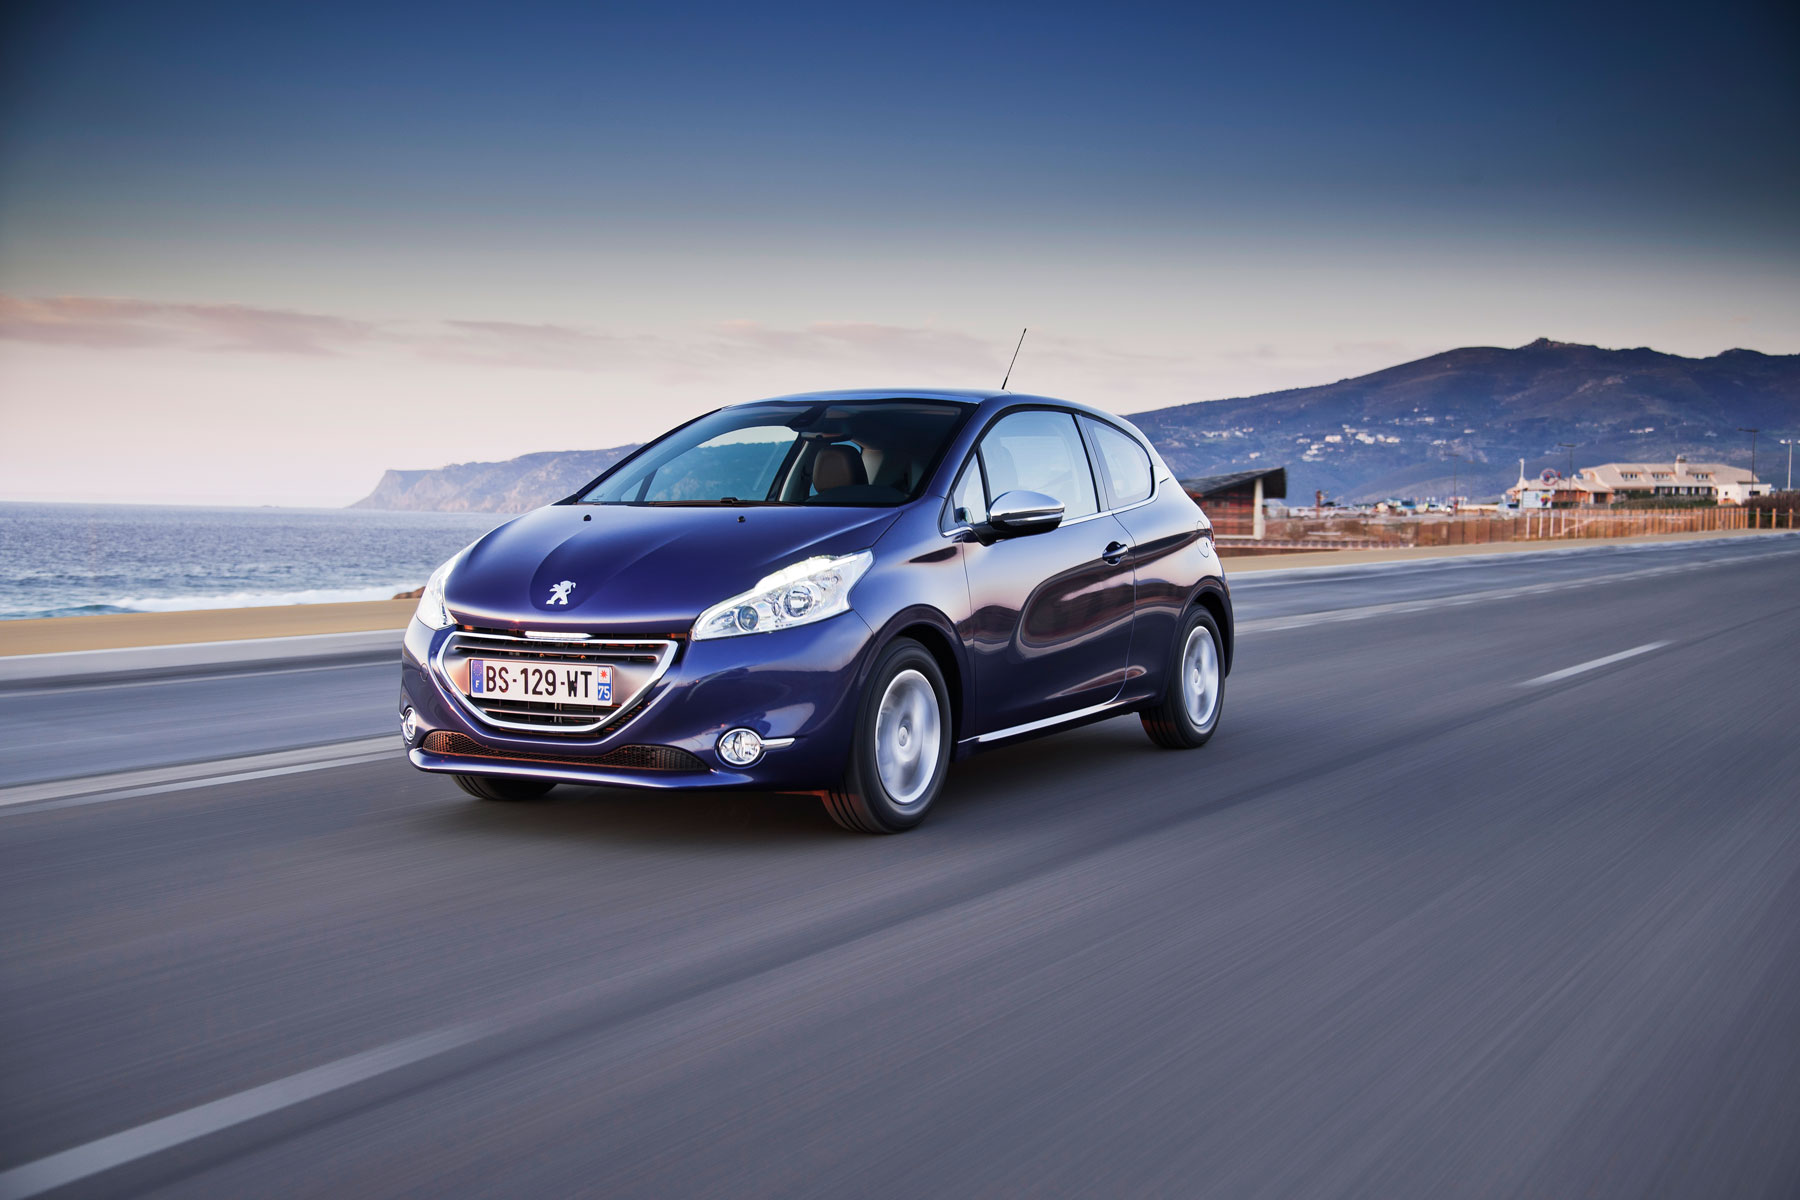 Peugeot_208_3_cilindros